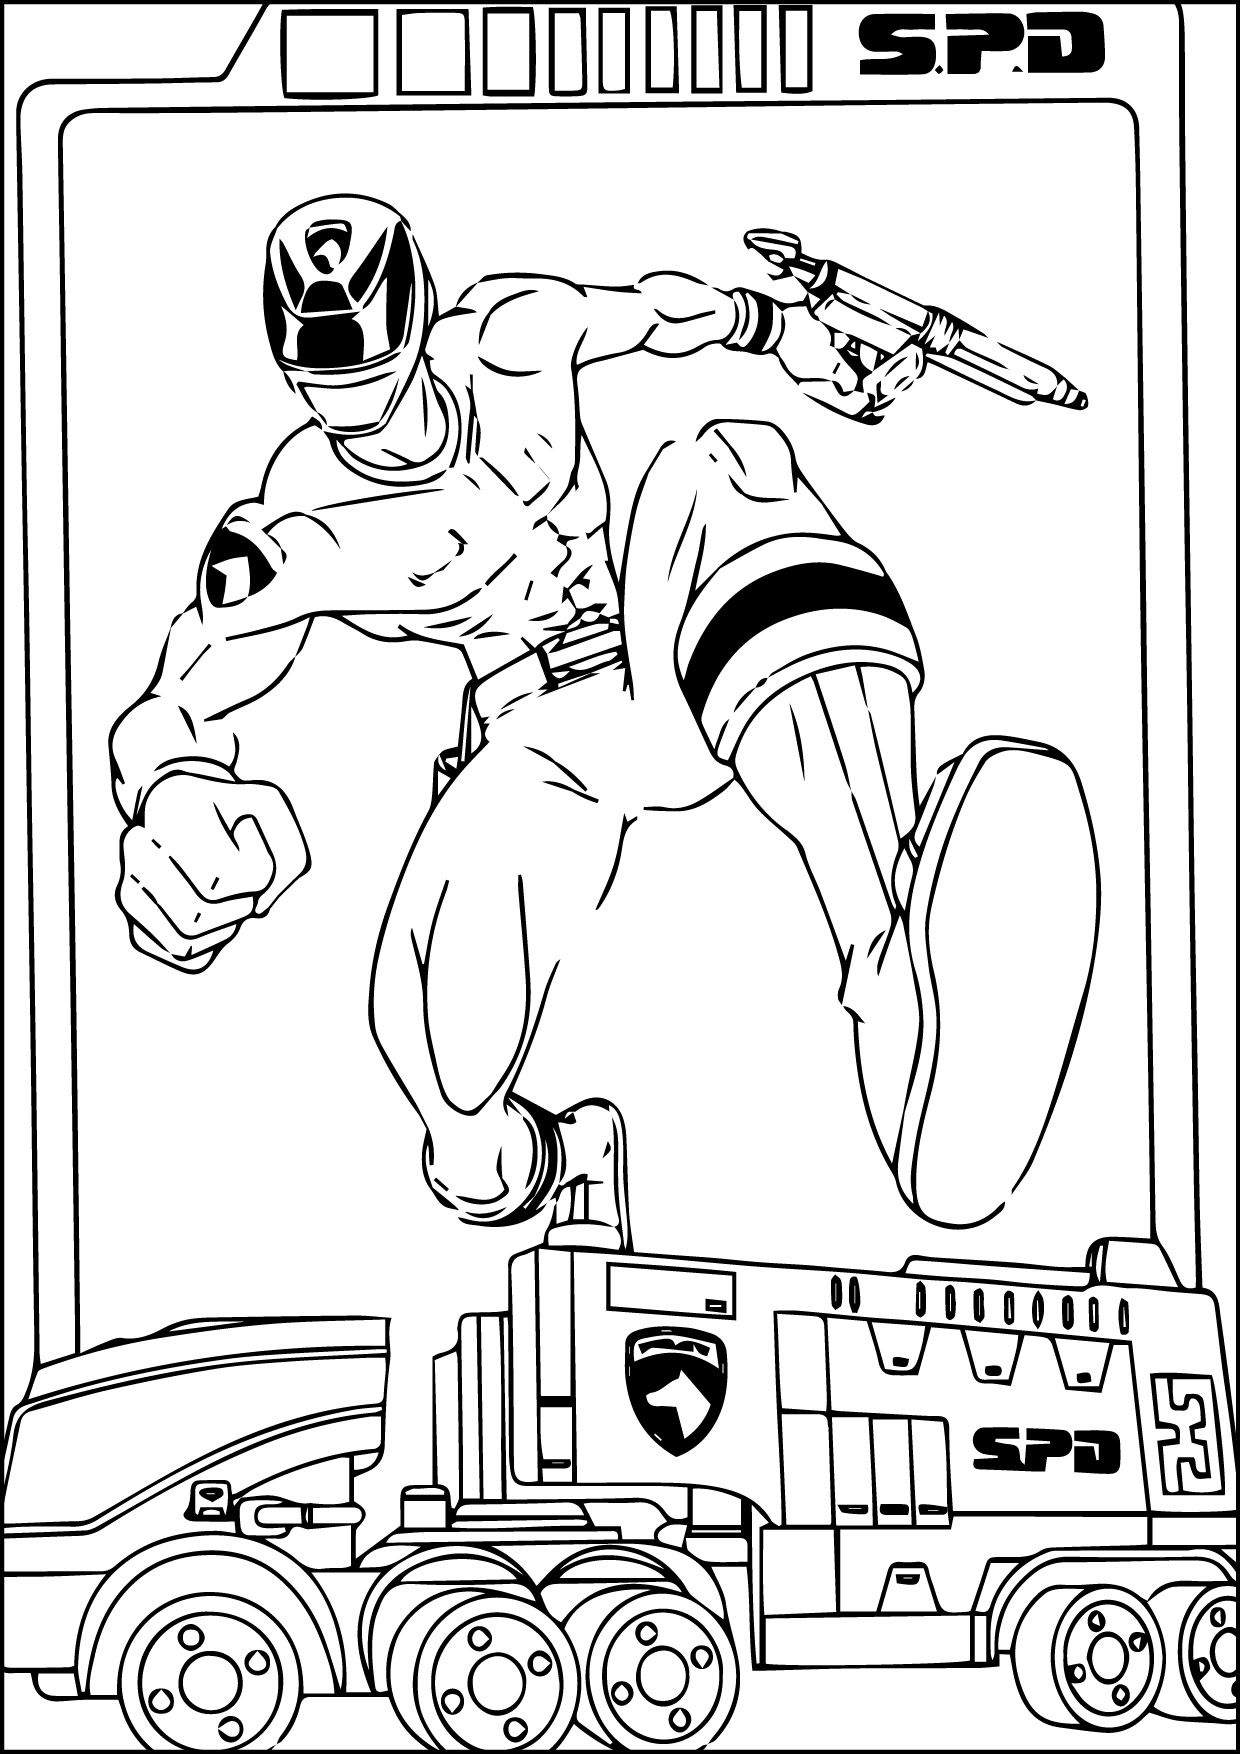 Cool Coloring Page 17 09 01